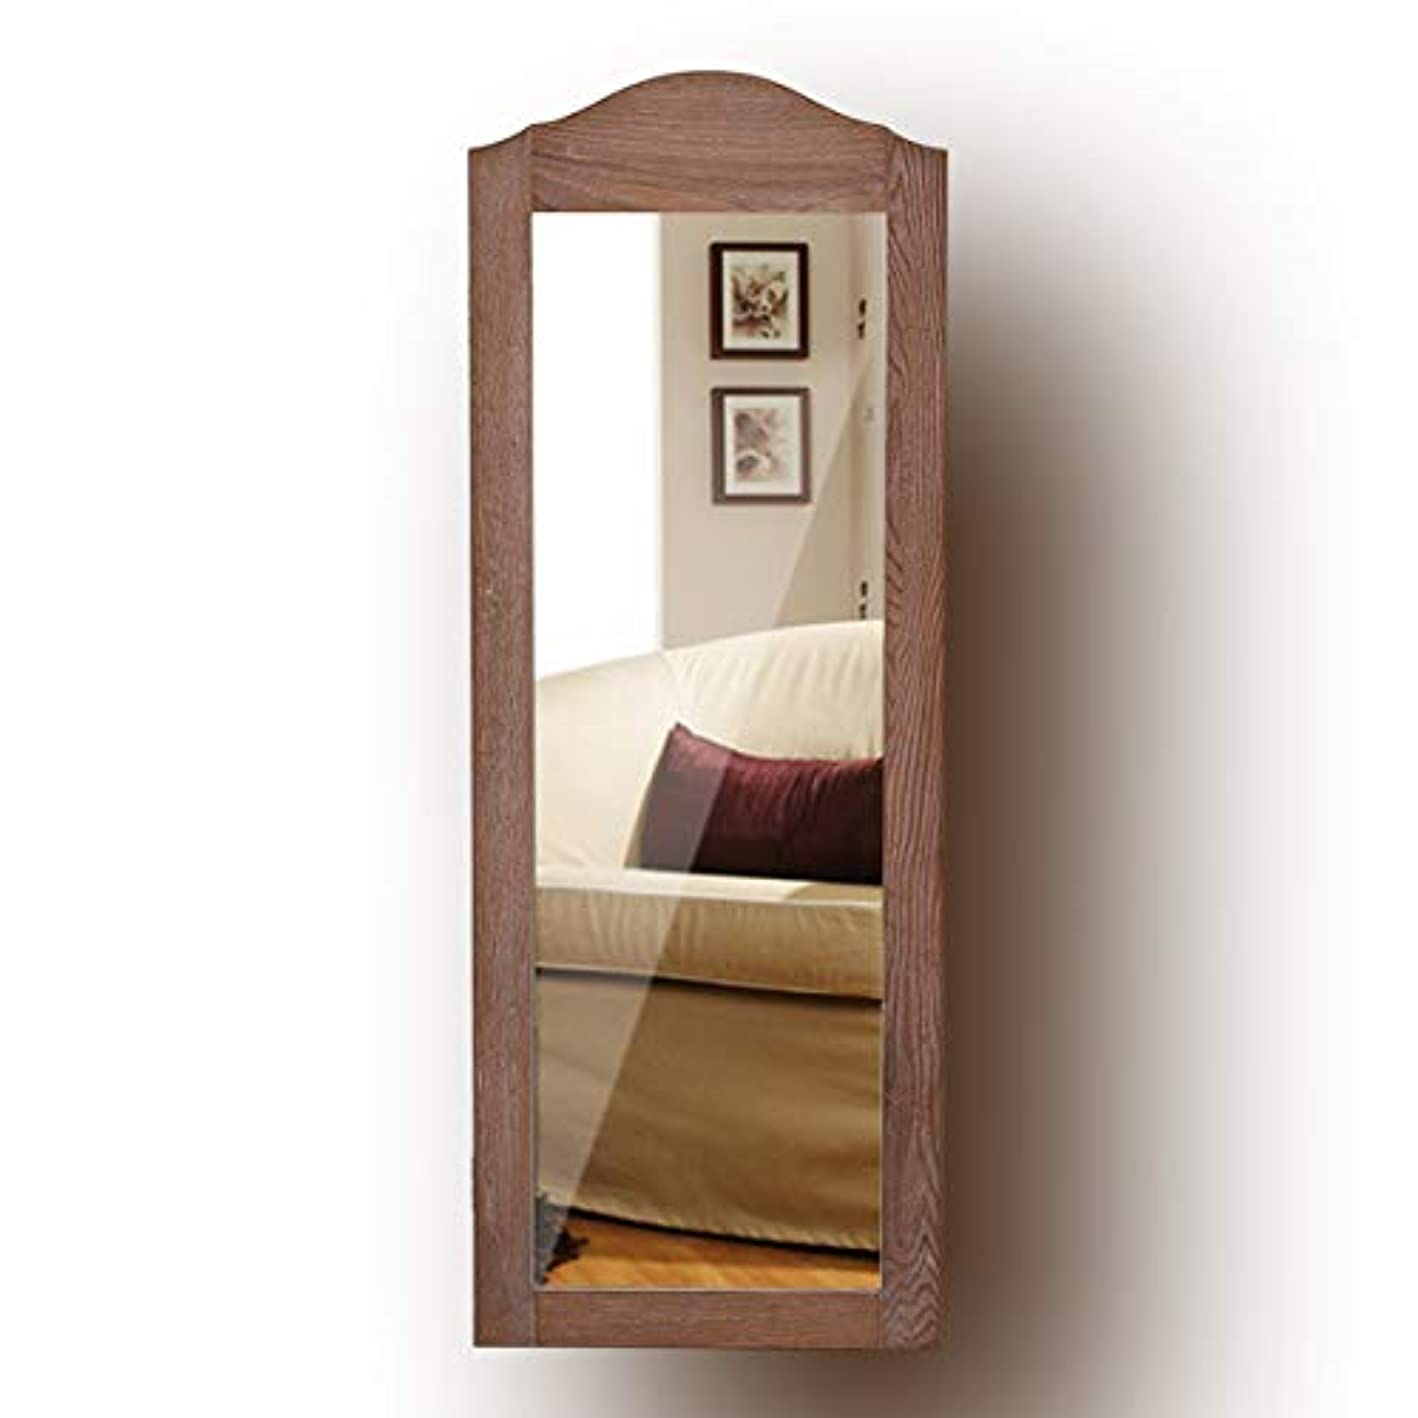 Giantex Jewelry Armoire Cabinet Wall Mounted with Mirror Rustic Full Length Mirrored Storage Organizer Multiple Shelves 10 Hooks, Bedroom Armoires Jewelry Cabinets (Natural Wood)